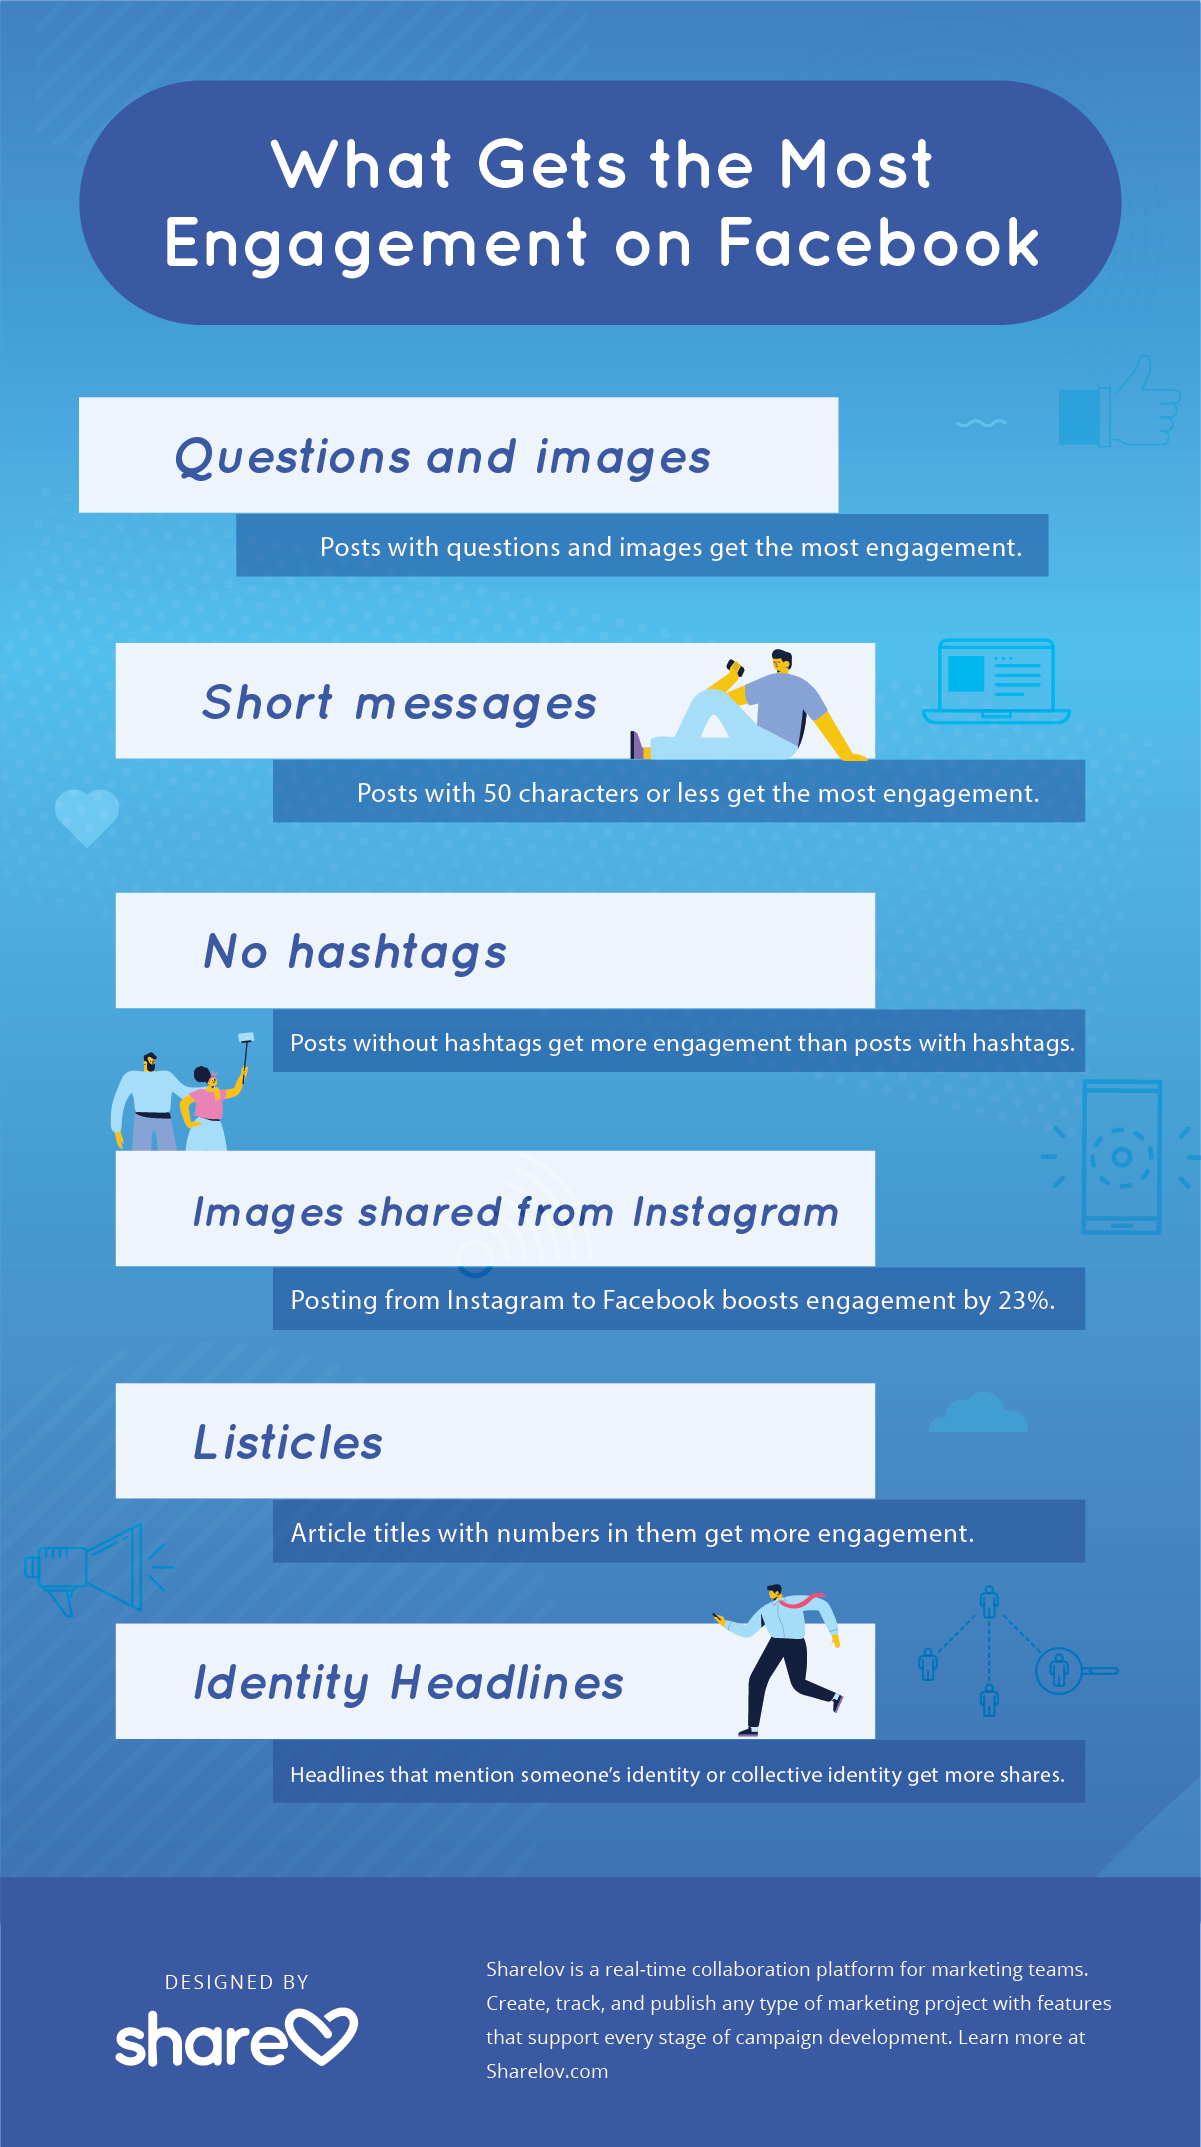 What gets the most engagement on Facebook infographic